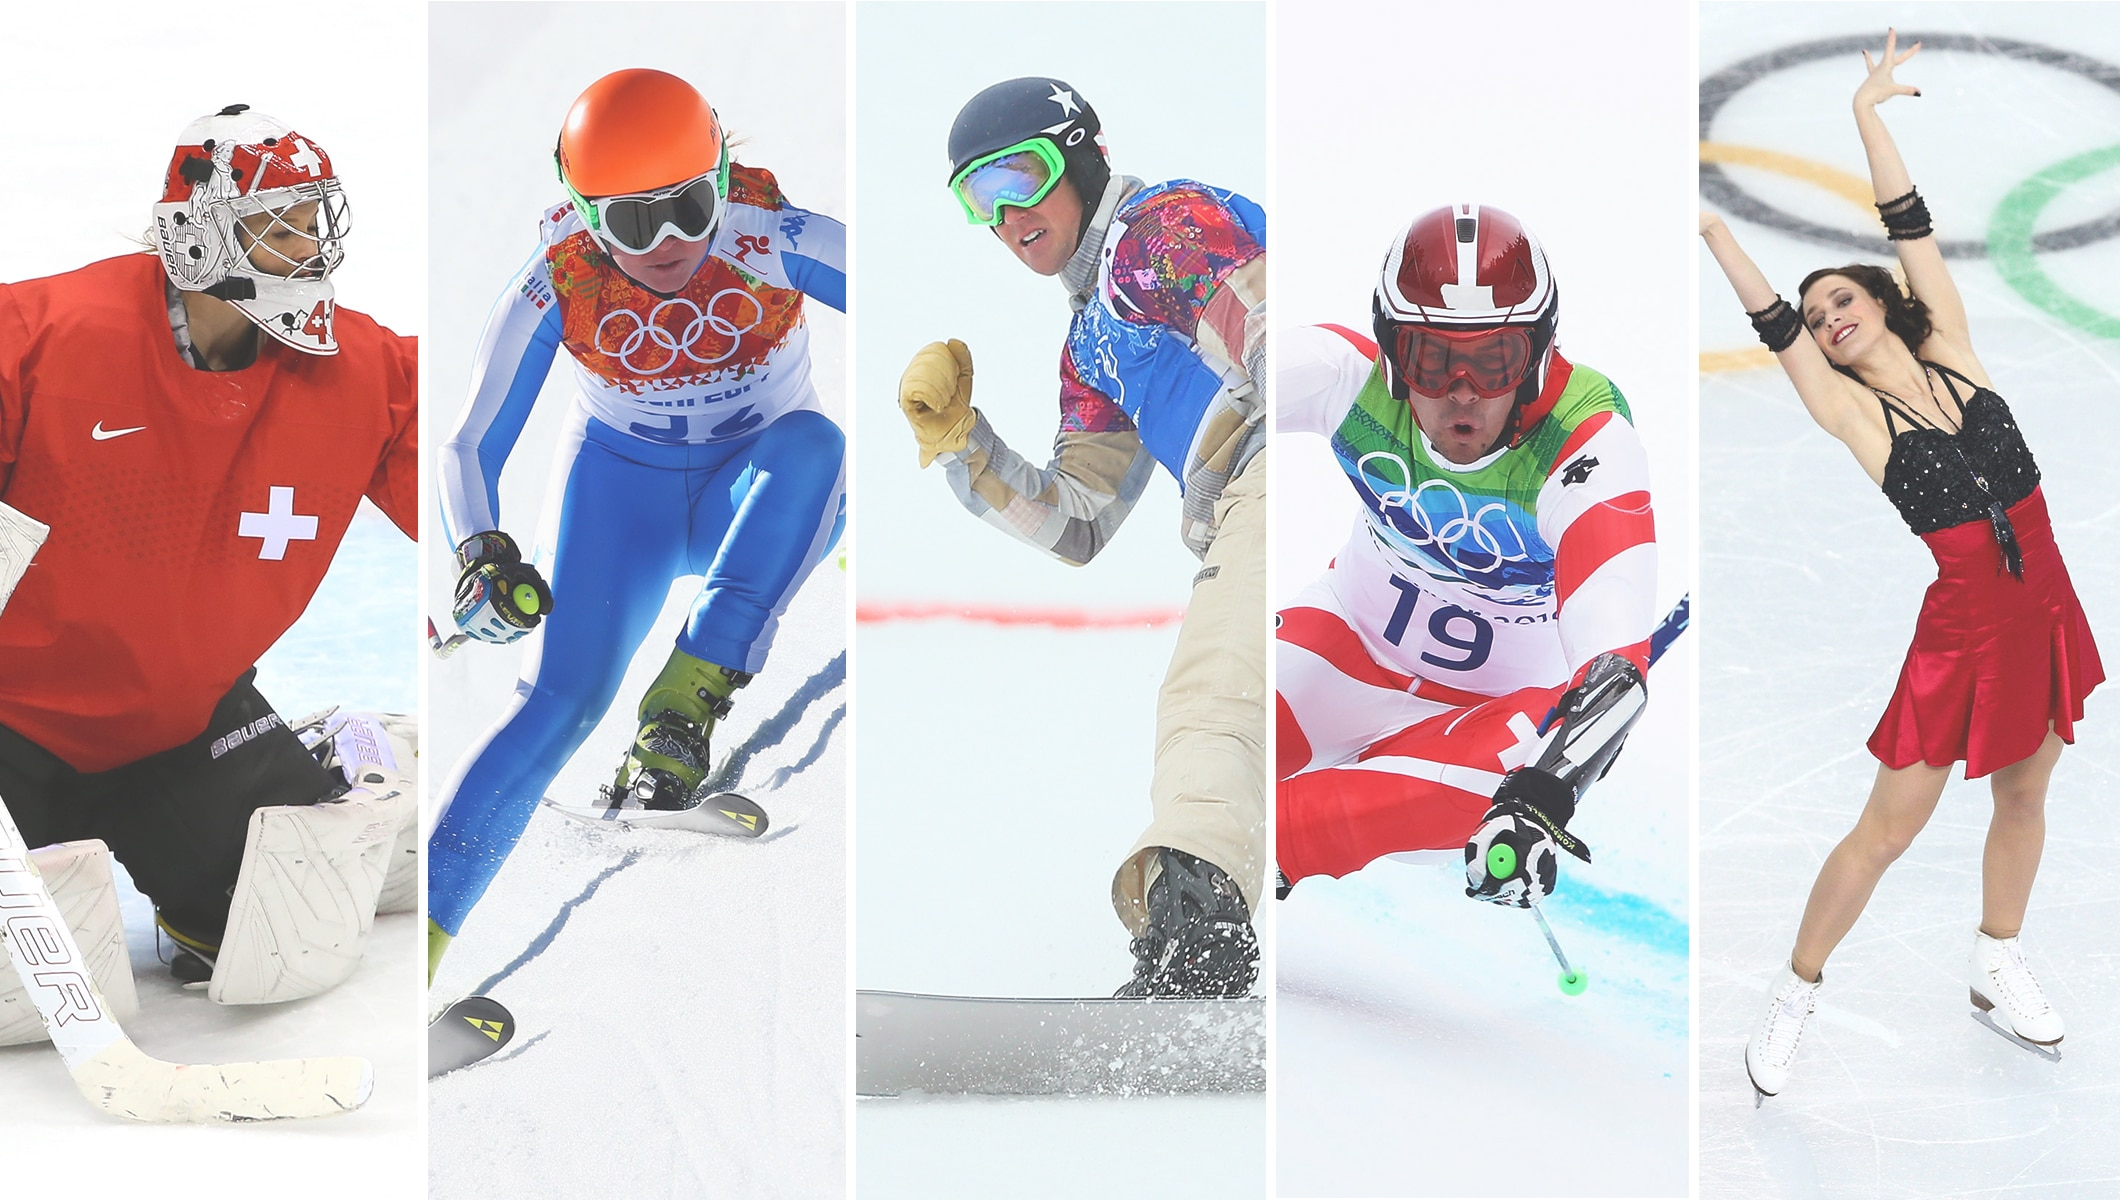 2020 Winter Olympics Skiing.Five More Amazing Athletes To Mentor Lausanne 2020